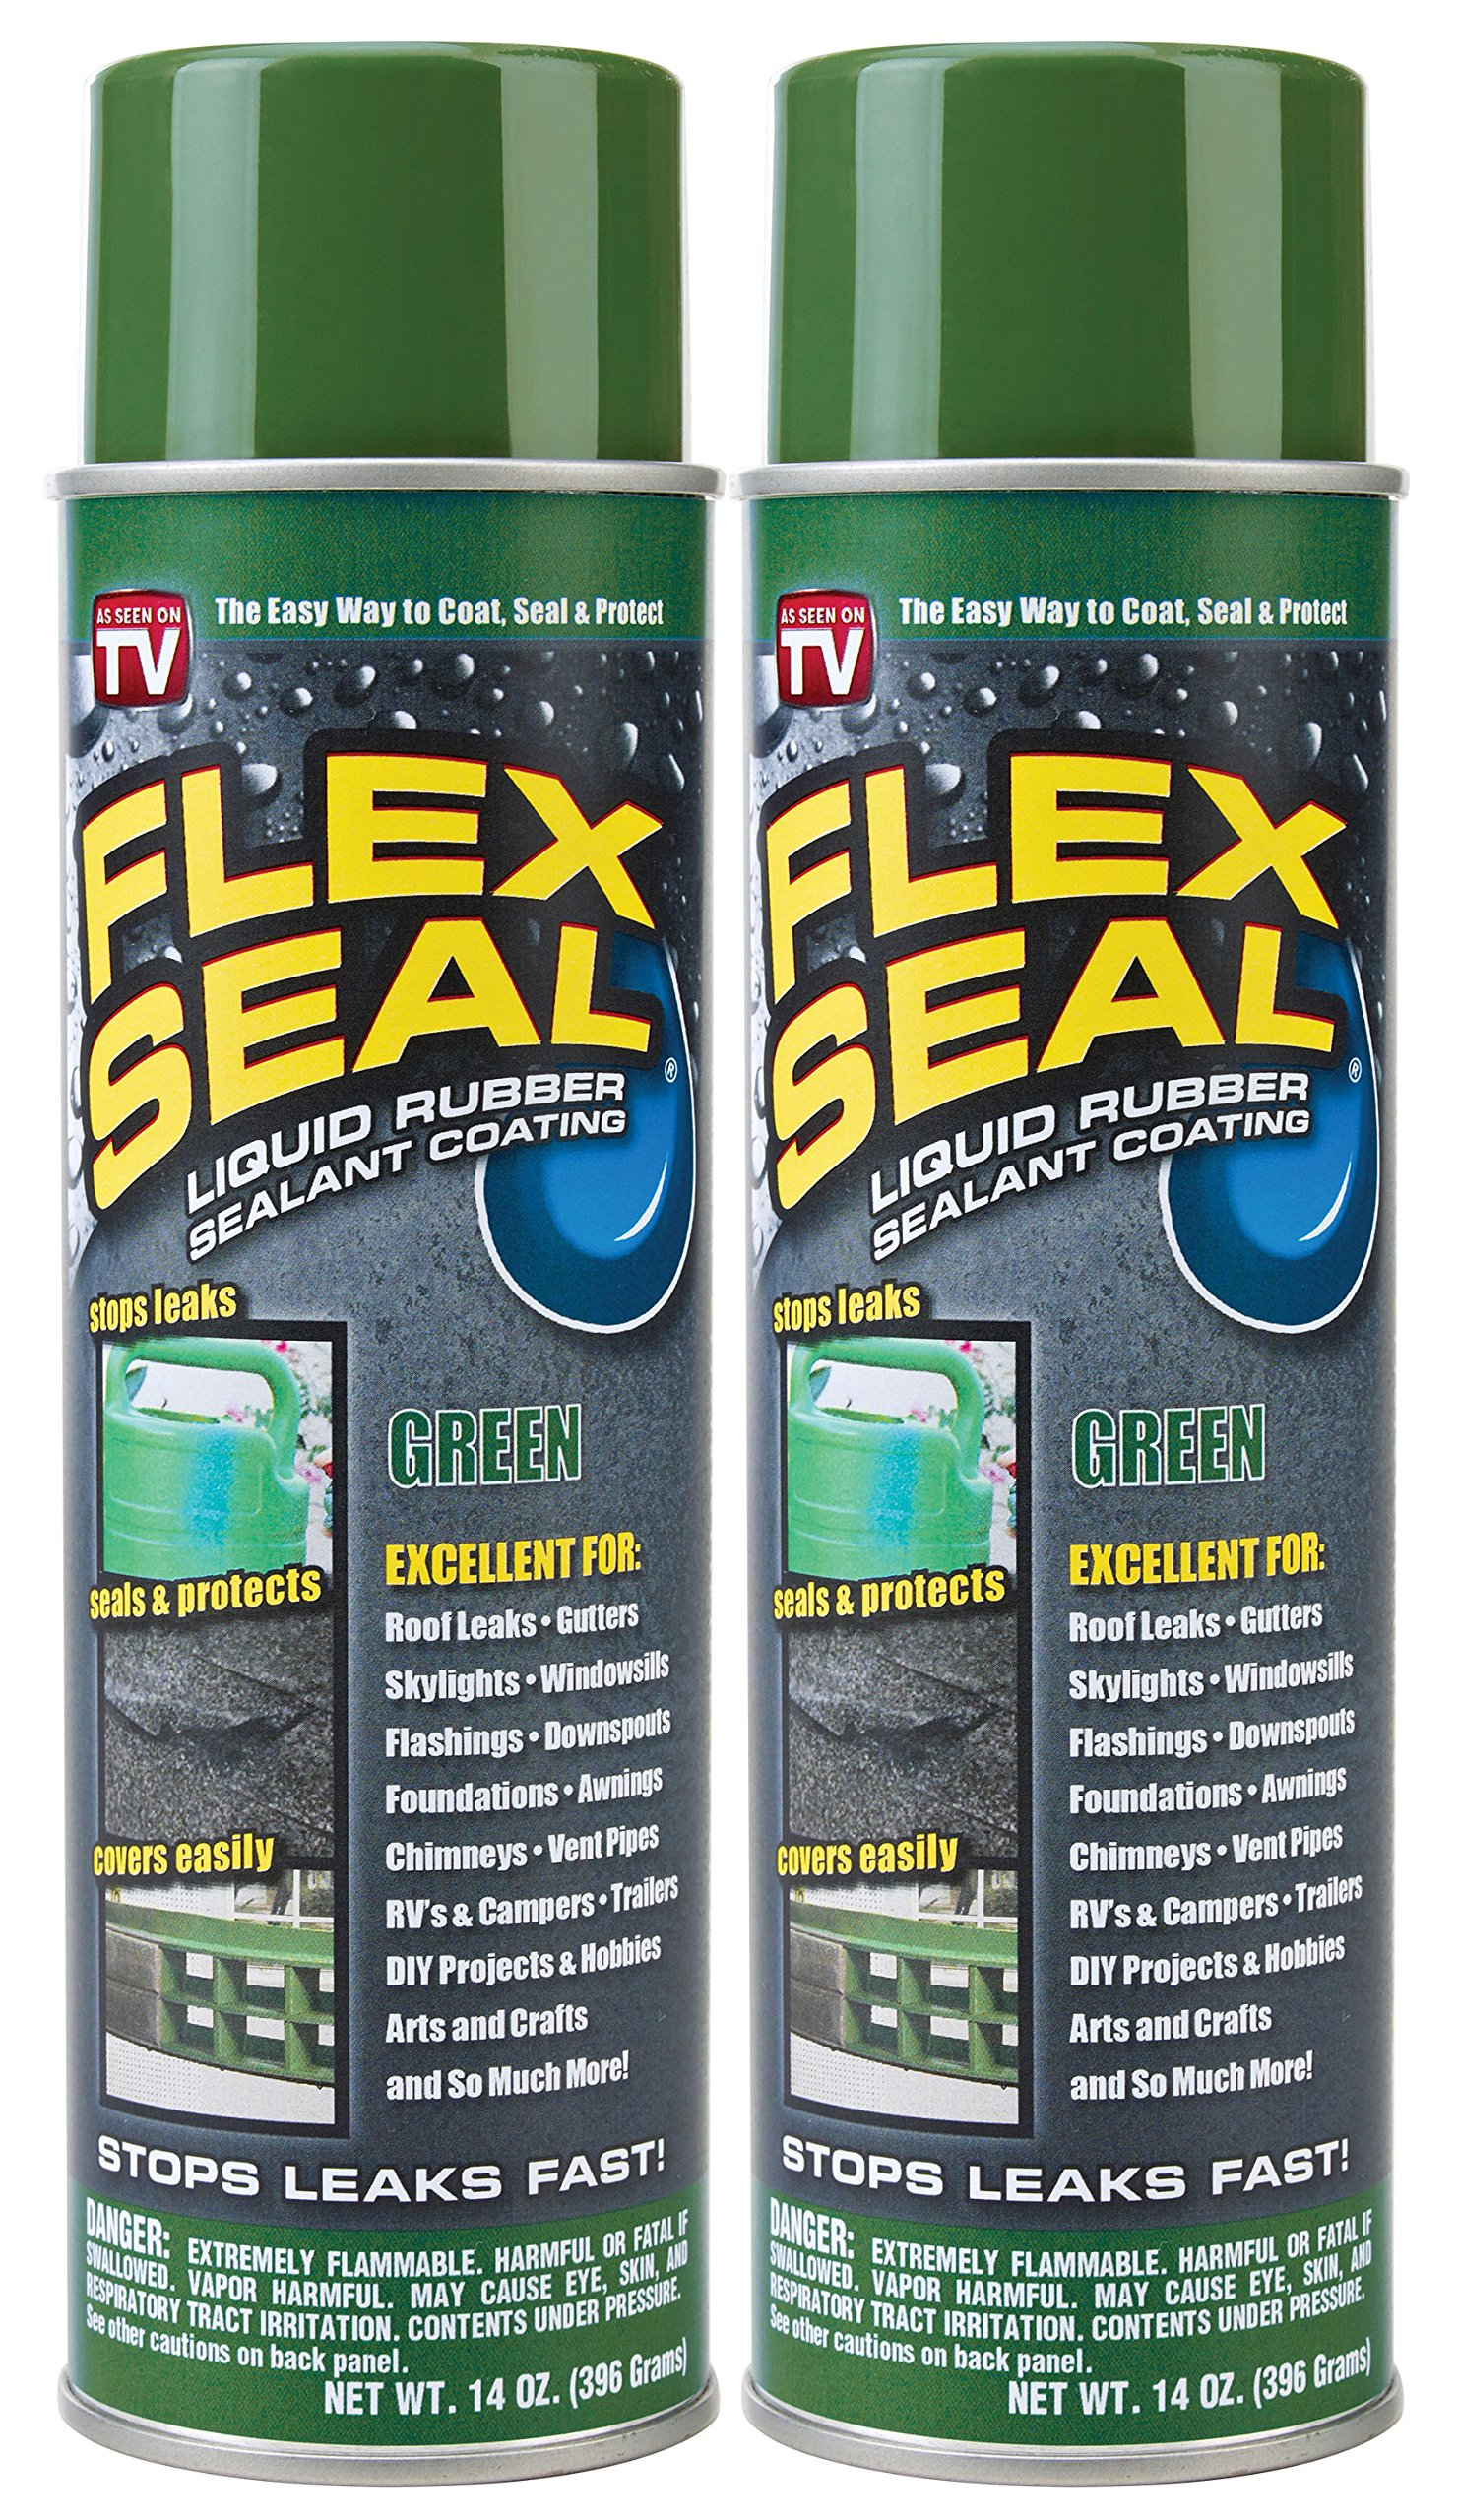 Flex Seal Spray Rubber Sealant Coating, 14-oz, Green (2 Pack)